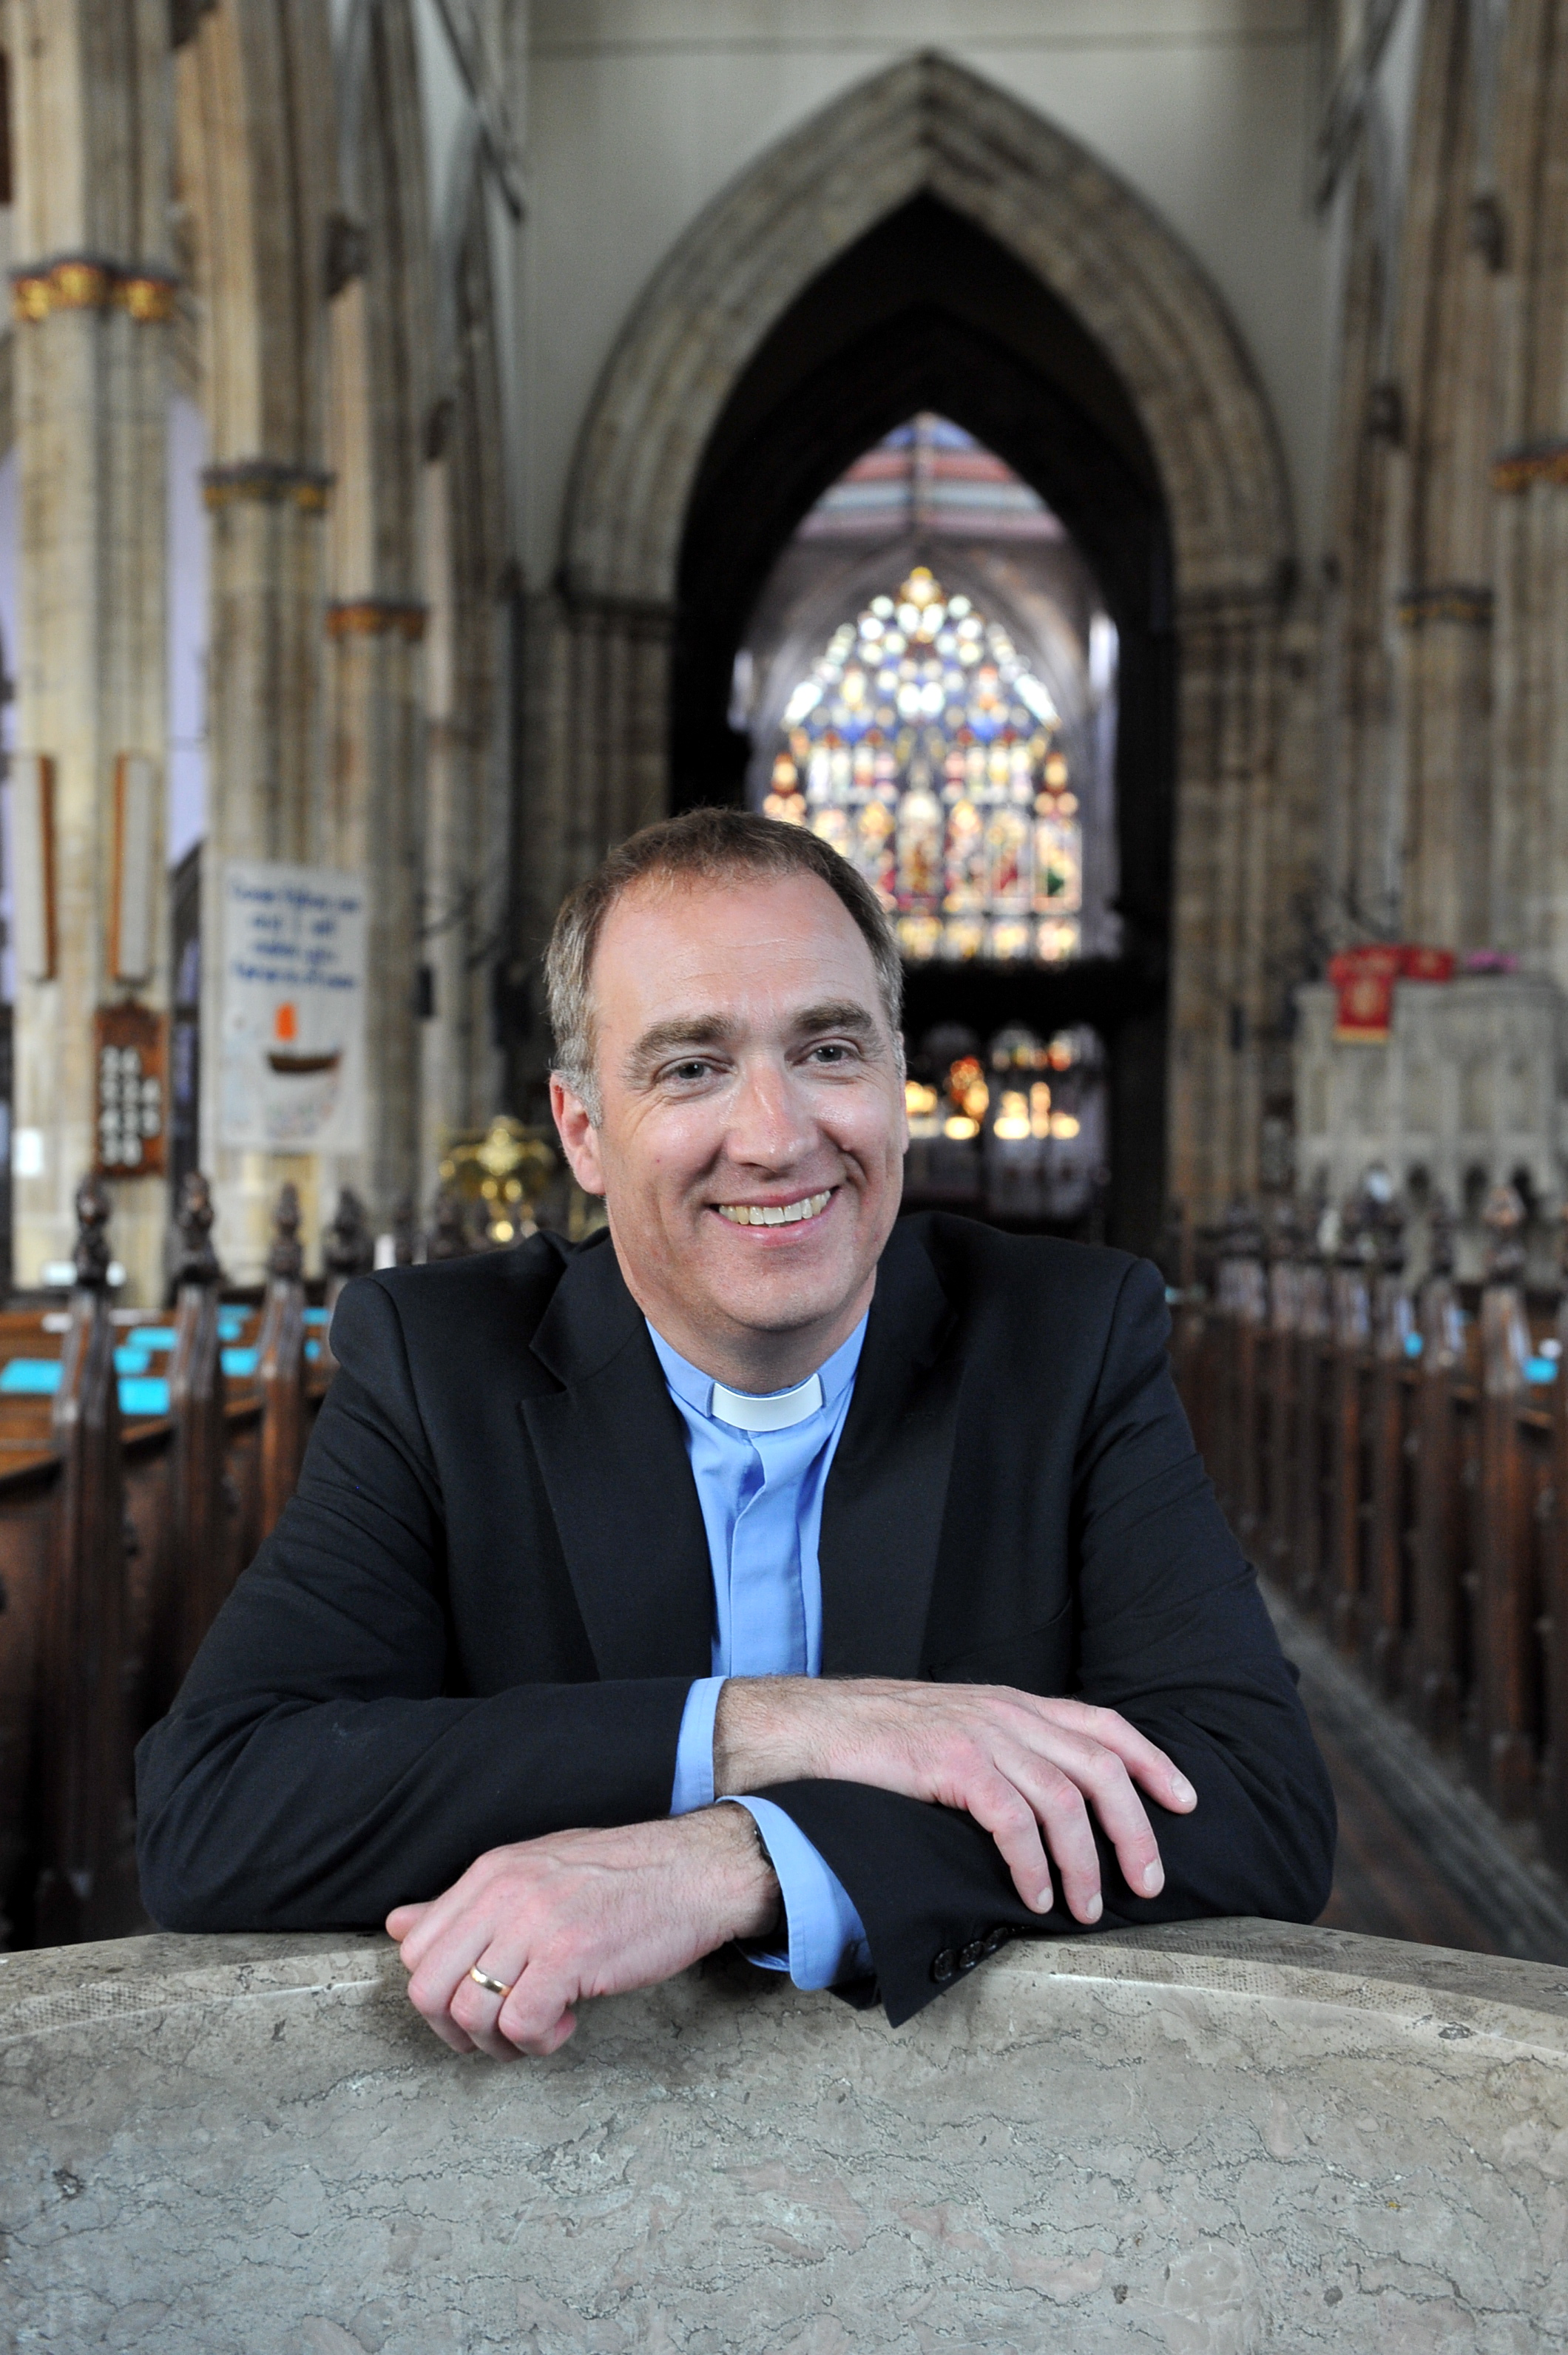 Vicar Neal Barnes will welcome HRH The Prince of Wales to Holy Trinity during a day of engagements in Hull.